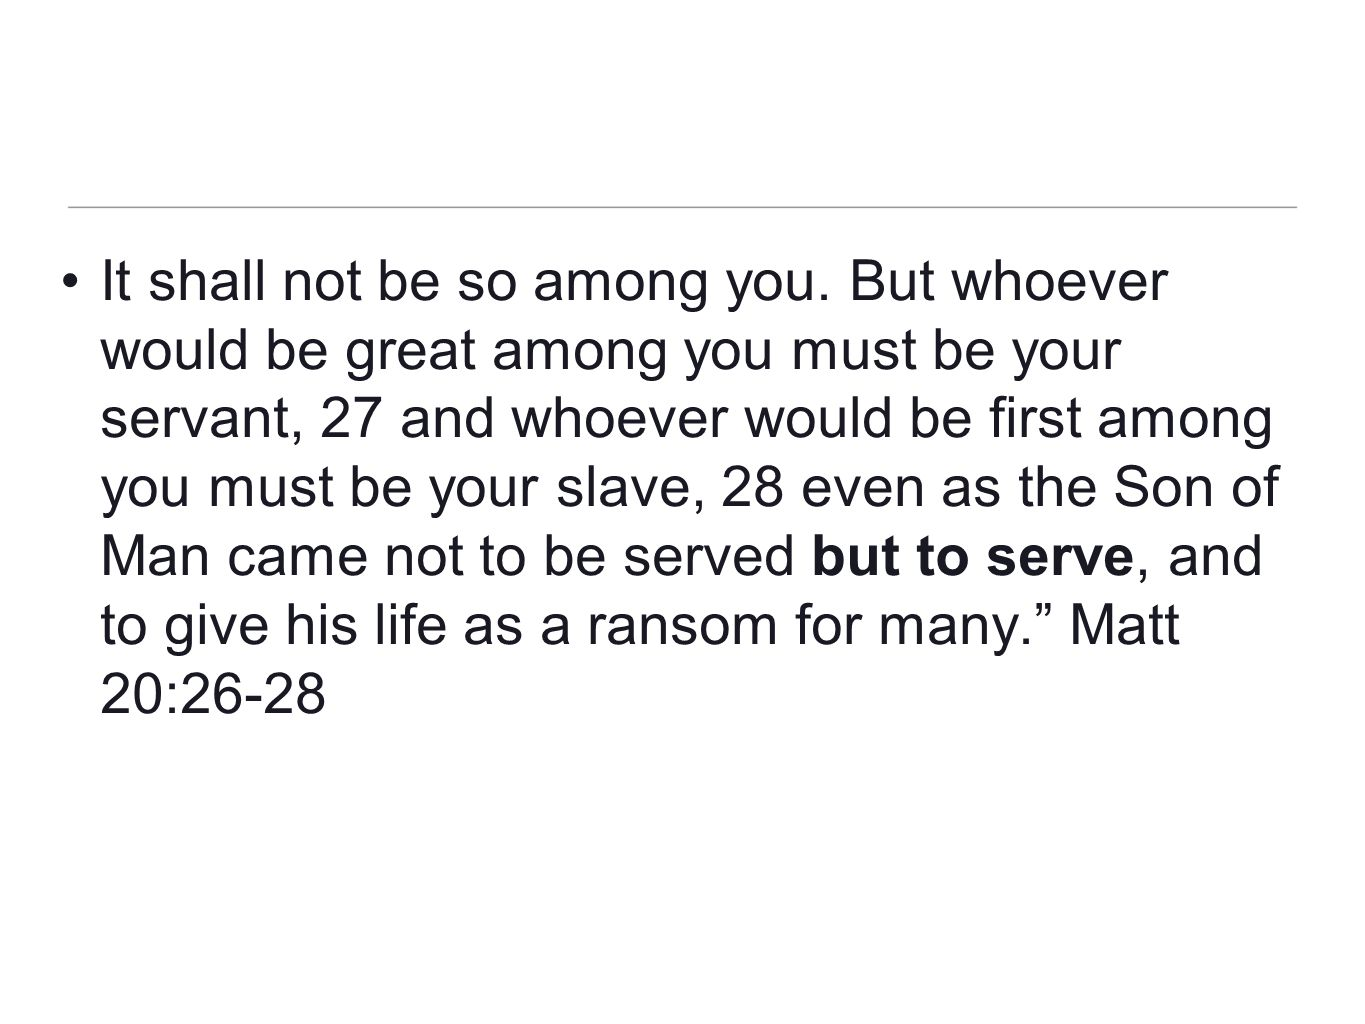 It shall not be so among you